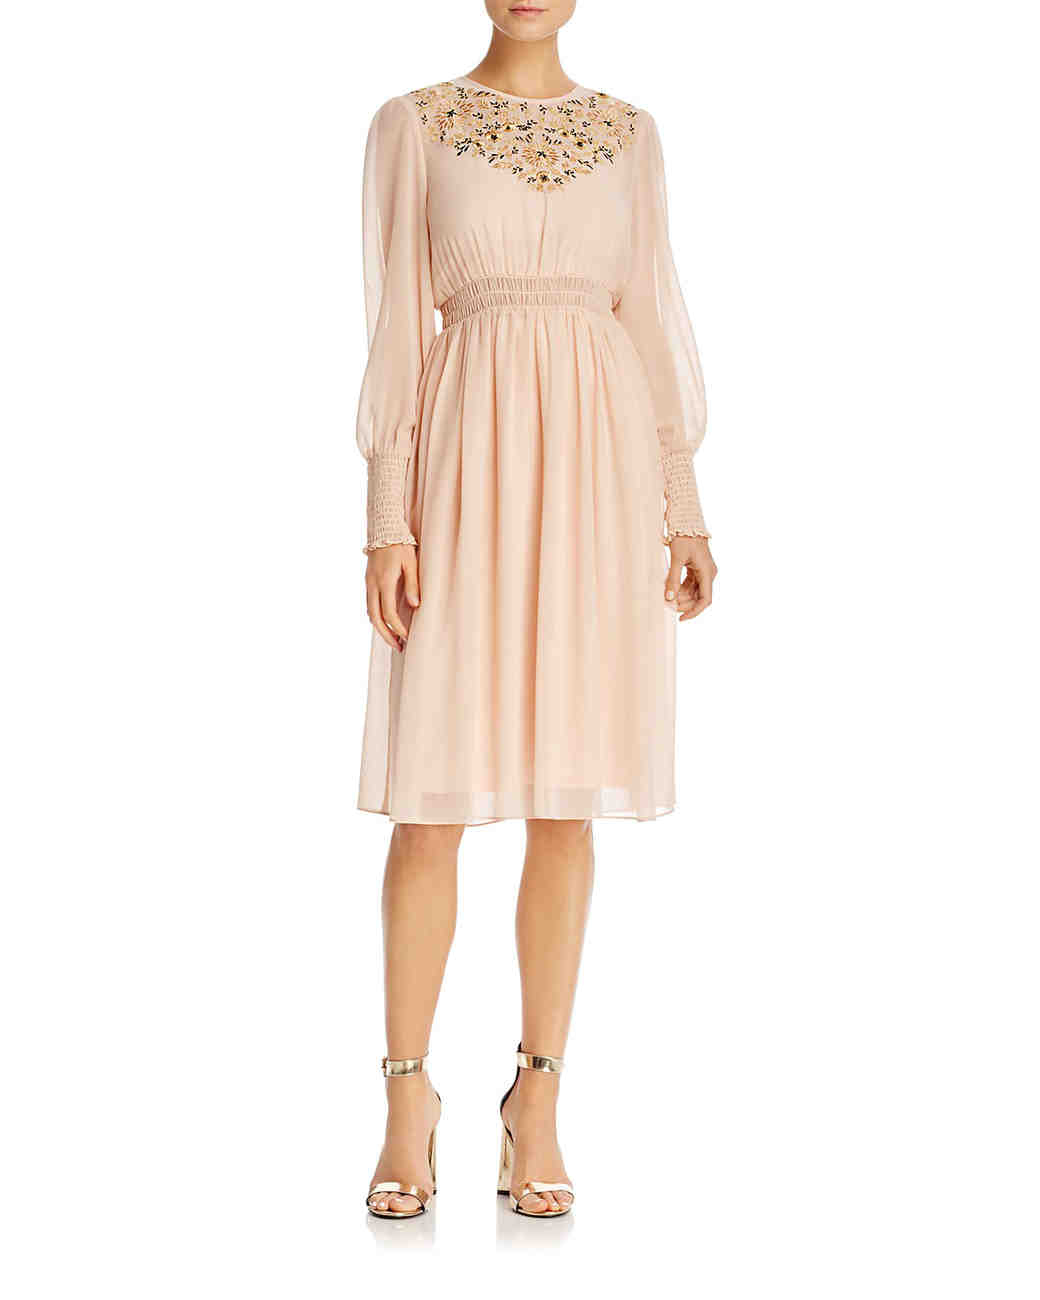 Nanette Nanette Lepore embroidered smocked dress